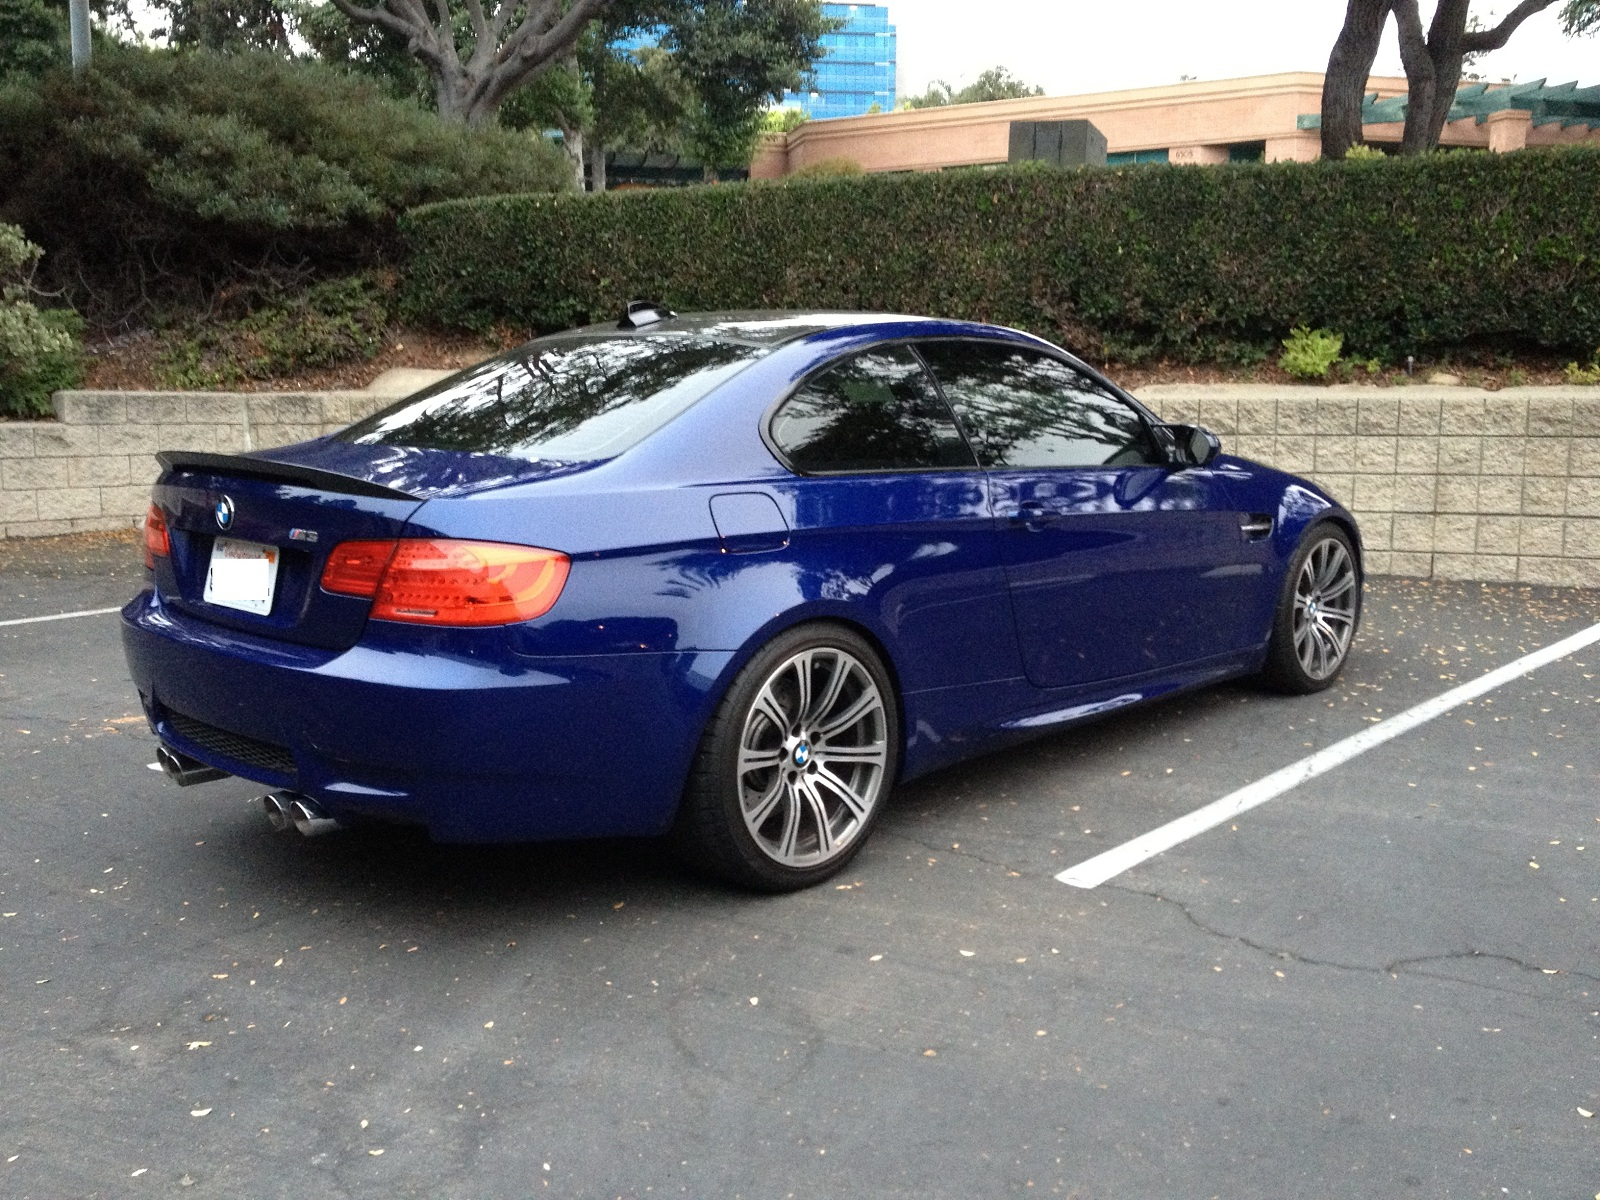 Feeler Fs 2009 E92 M3 Dct Navi Interlagos Blue